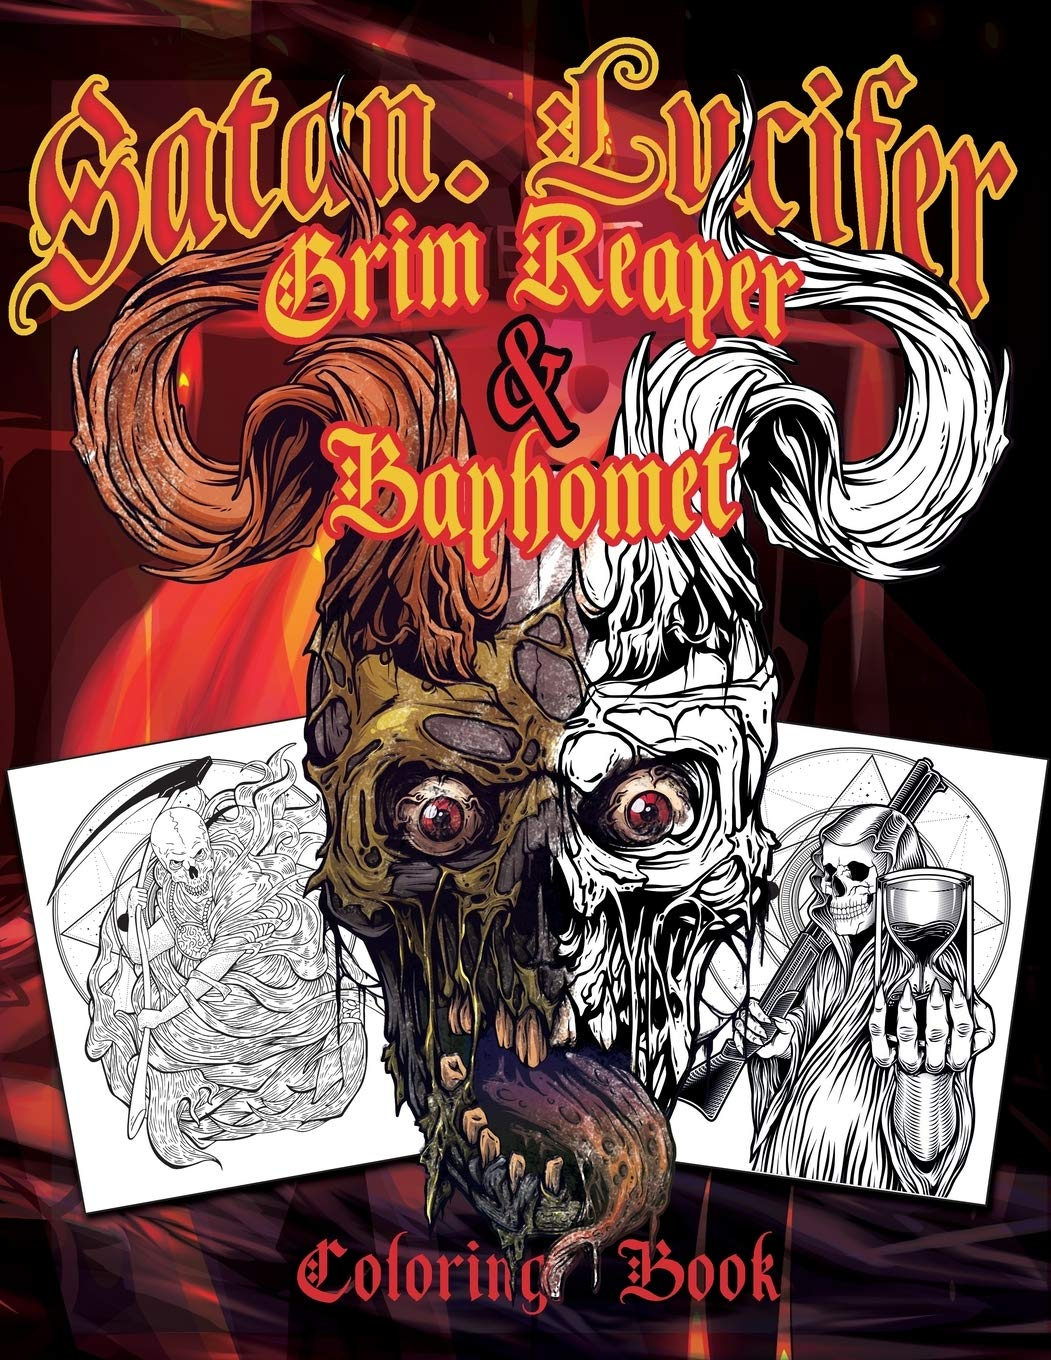 Satan Lucifer Grim Reaper Baphomet Coloring Book Featuring Black Goat Cthulhu The Grim Reaper The Krampus And More 35 Single Sided Pages Contains Adult Content Giraldo Juan 9781674948331 Amazon Com Books